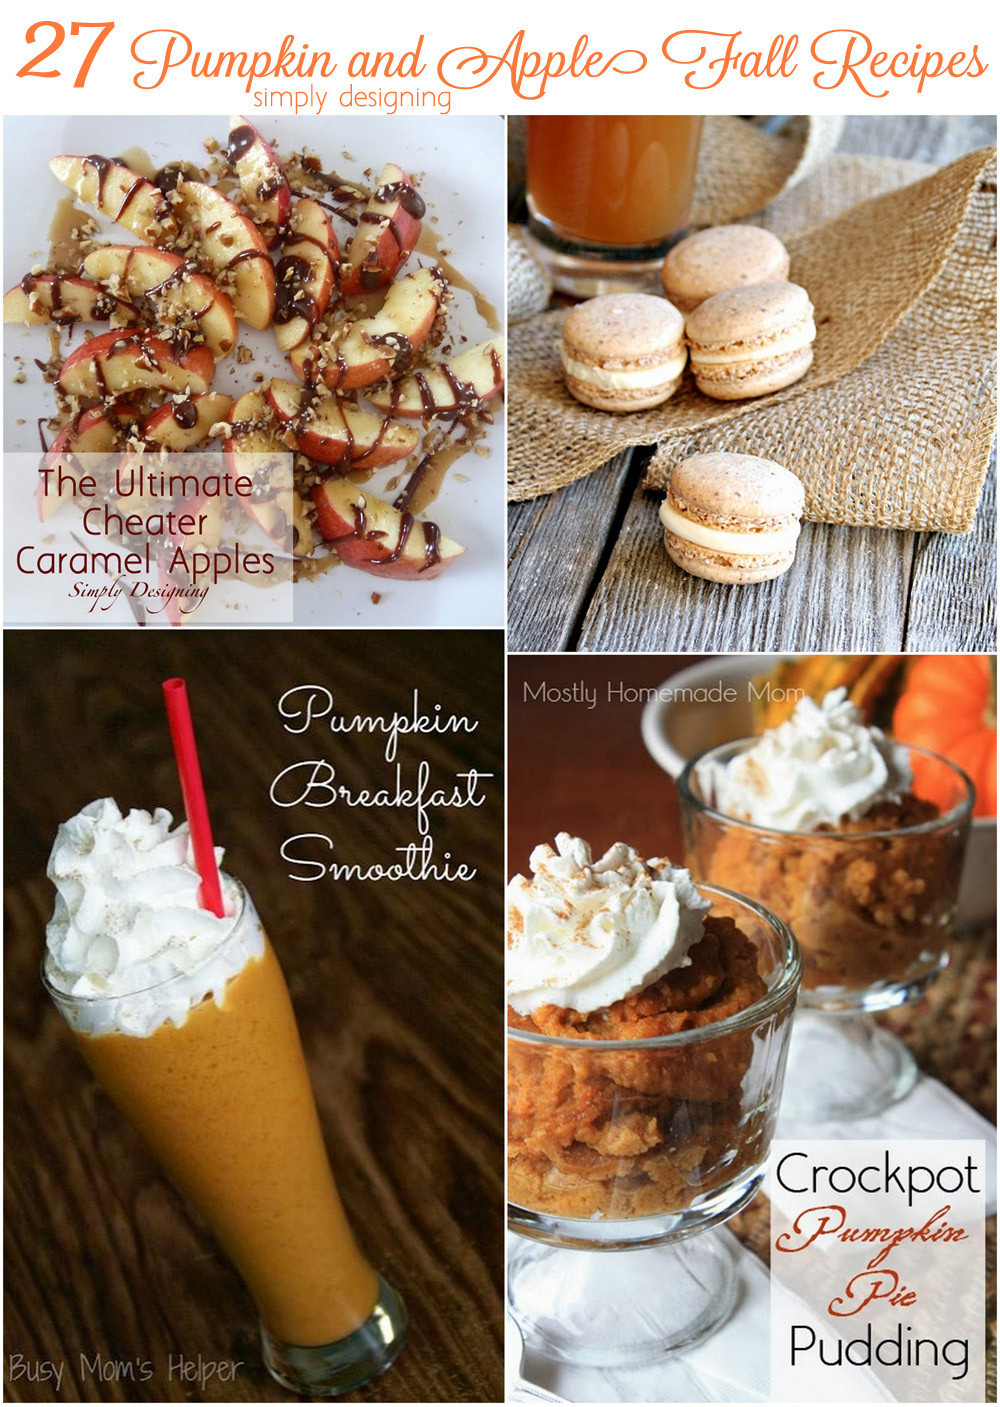 Pumpkin Recipes For Fall  27 Amazing Apple and Pumpkin Recipes for Fall